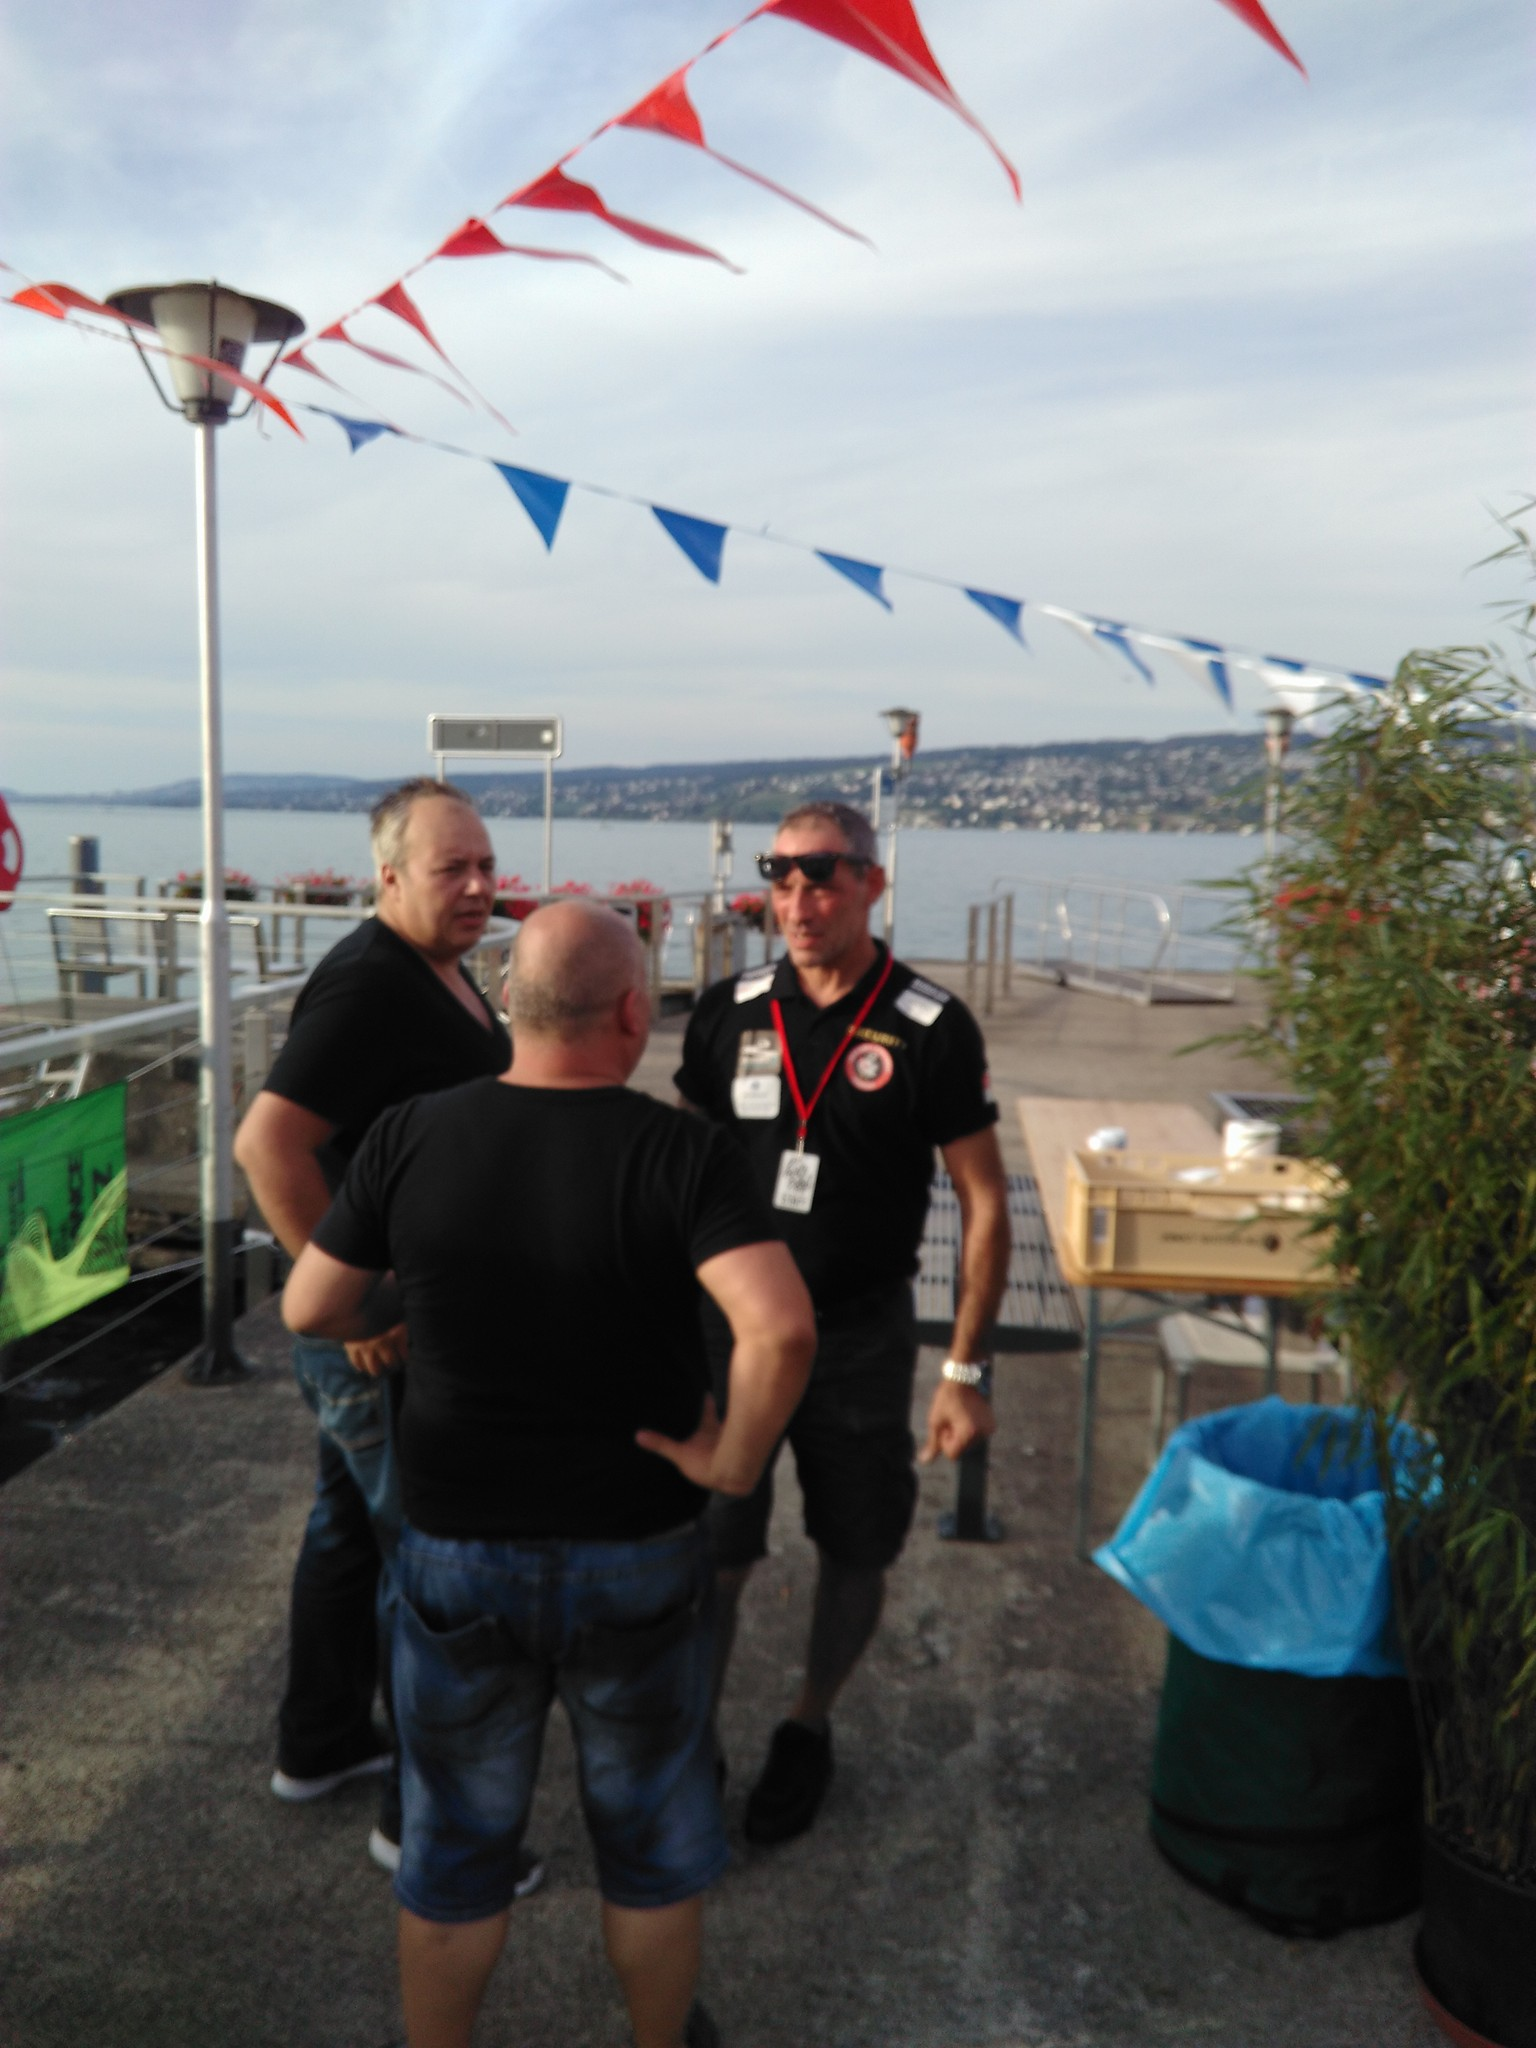 Box-Ring Zürichsee/ Reandmix / CP Workout - Dorffest 2016